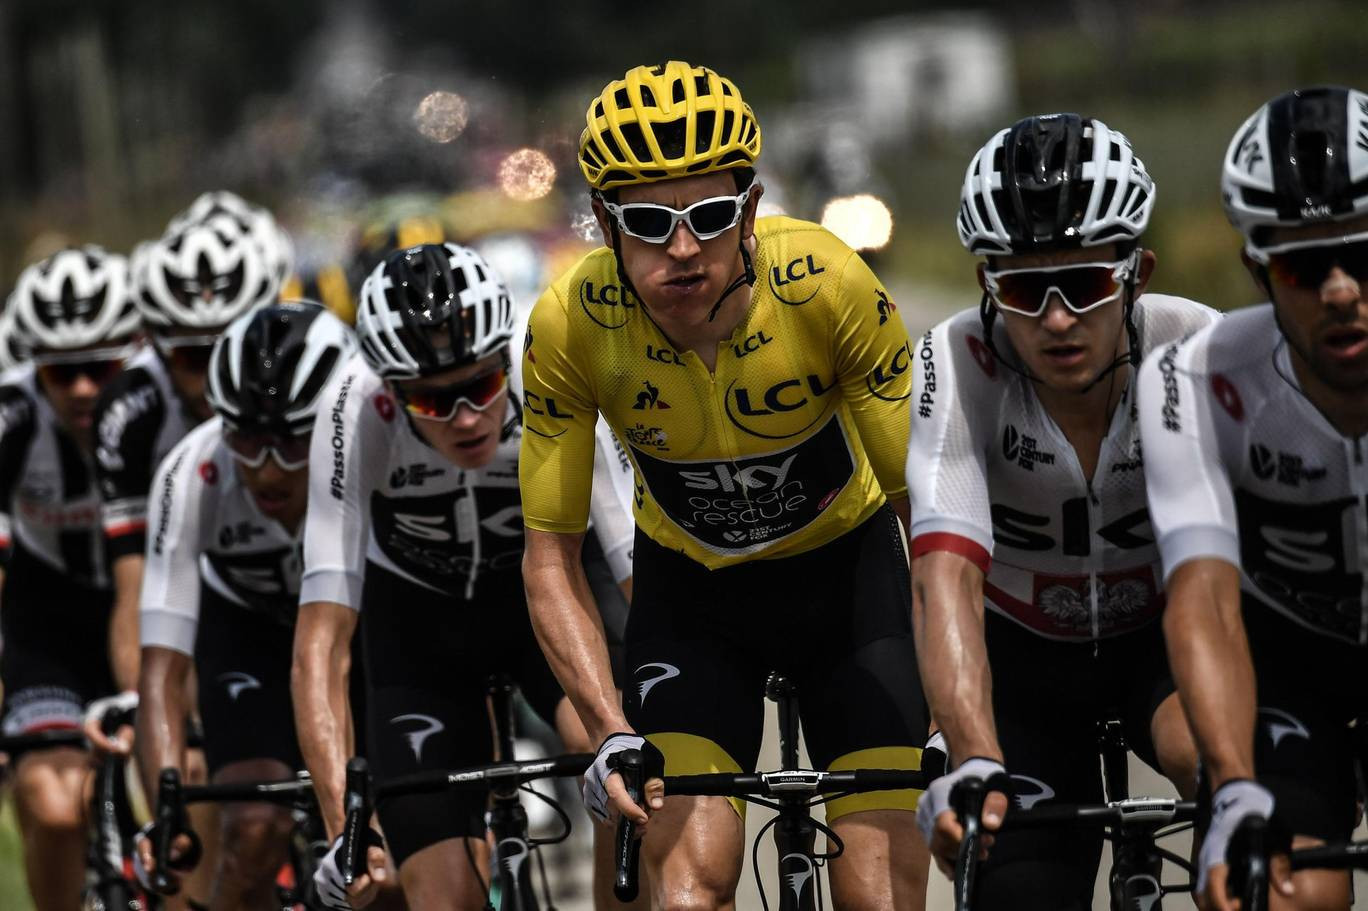 Proposals by UCI President David Lappartient to reform the WorldTour are widely believed to be aimed at ending the domination of Britain's Team Sky in the Grand Tours ©Getty Images